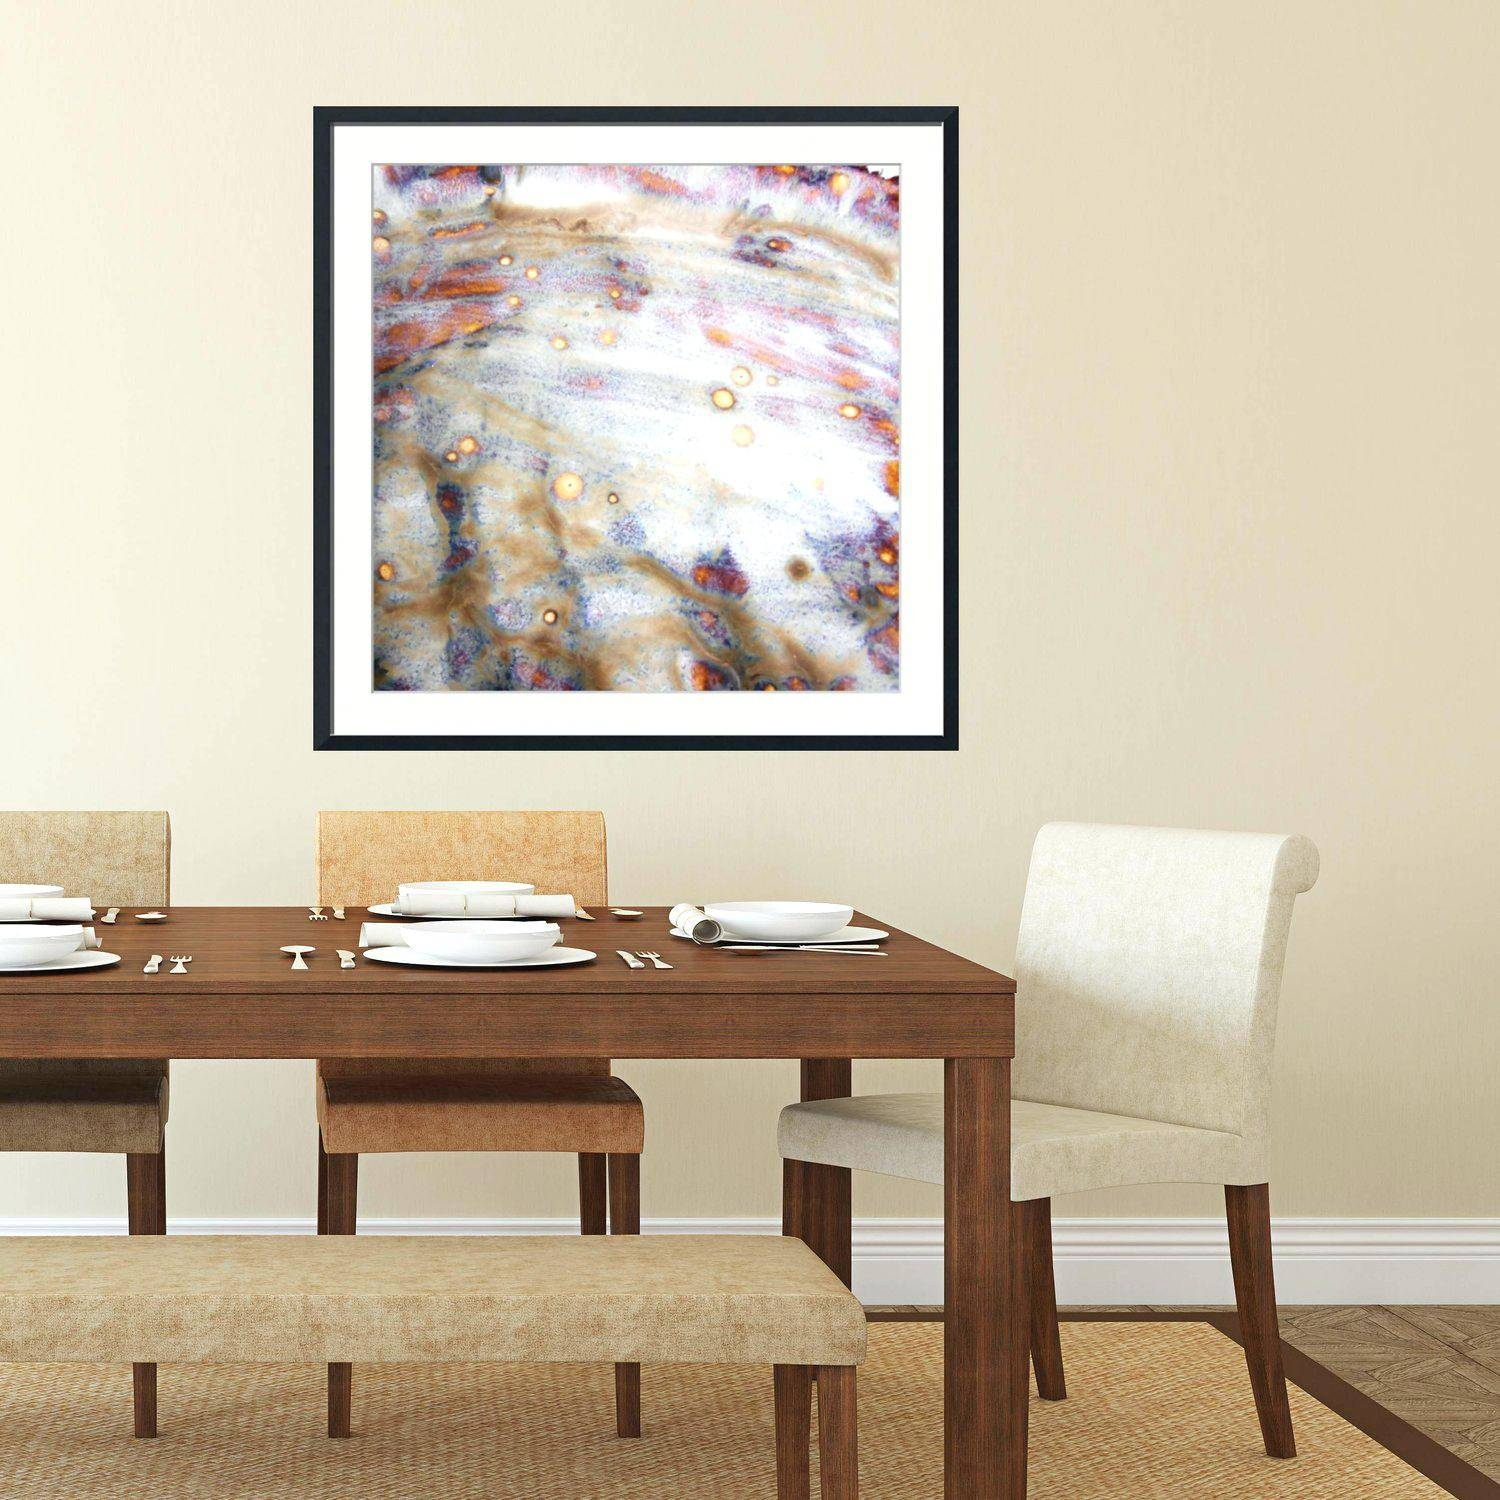 Rooms With Oversized Art 10 Dining Rooms With Oversized Art Mid Inside Most Current Oversized Framed Wall Art (View 18 of 20)